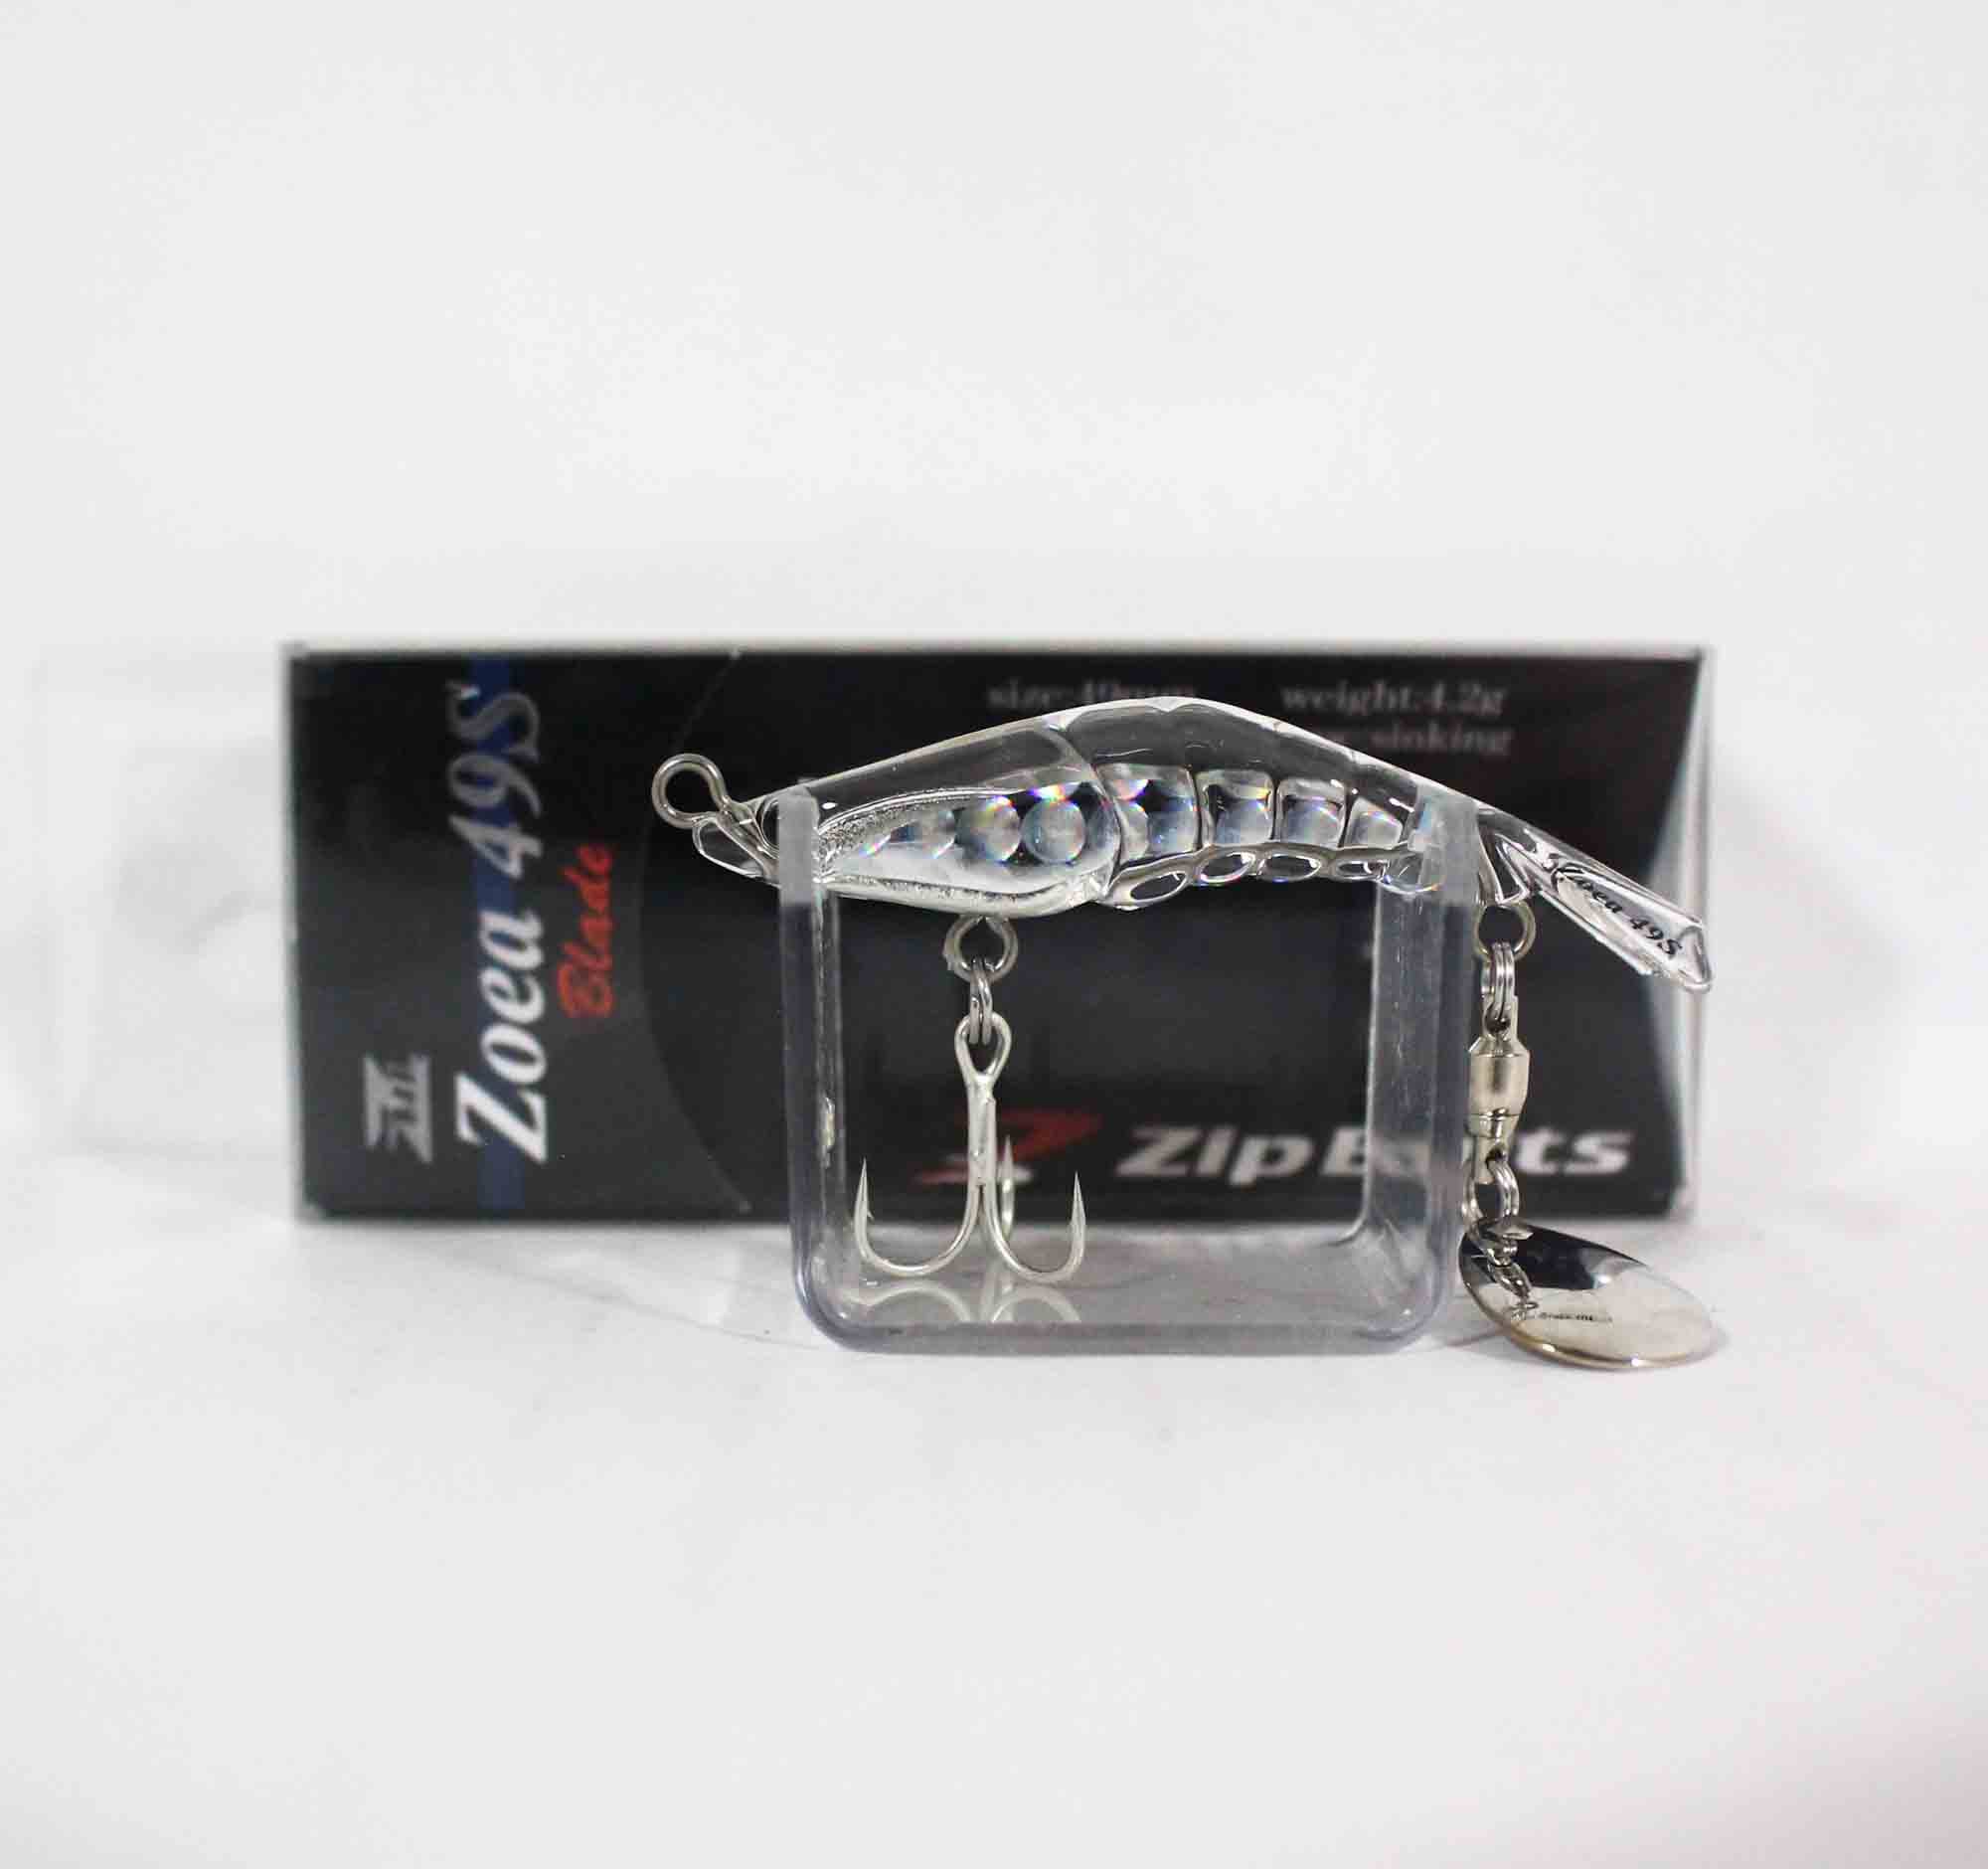 Zipbaits ZBL Zoea 49S Blade Sinking Lure 237 (7158)